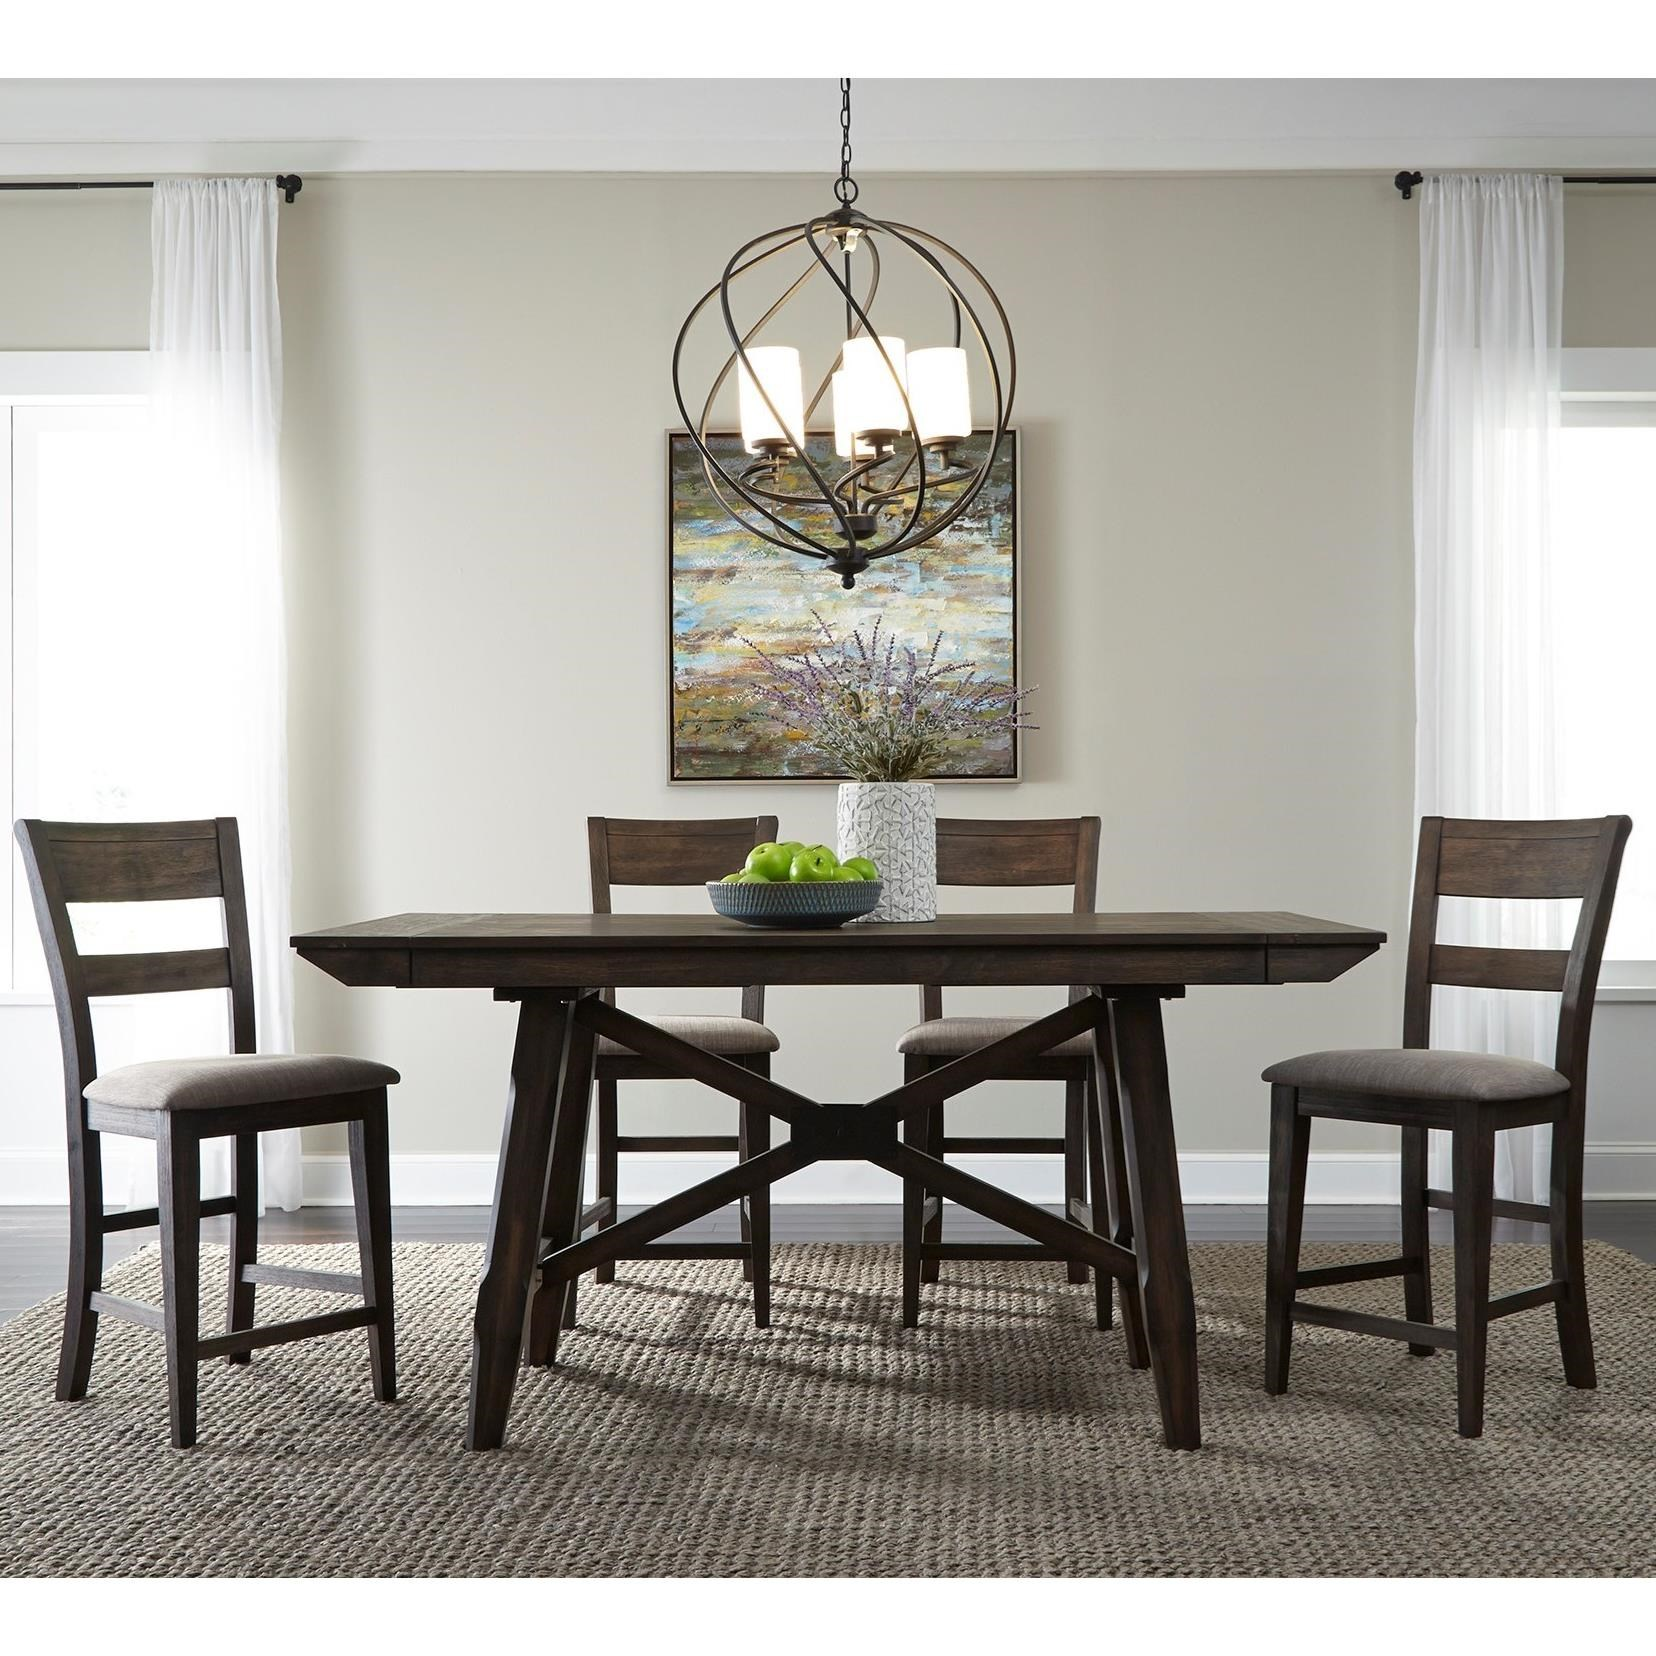 Double Bridge 5 Piece Gathering Table Set  by Liberty Furniture at SuperStore